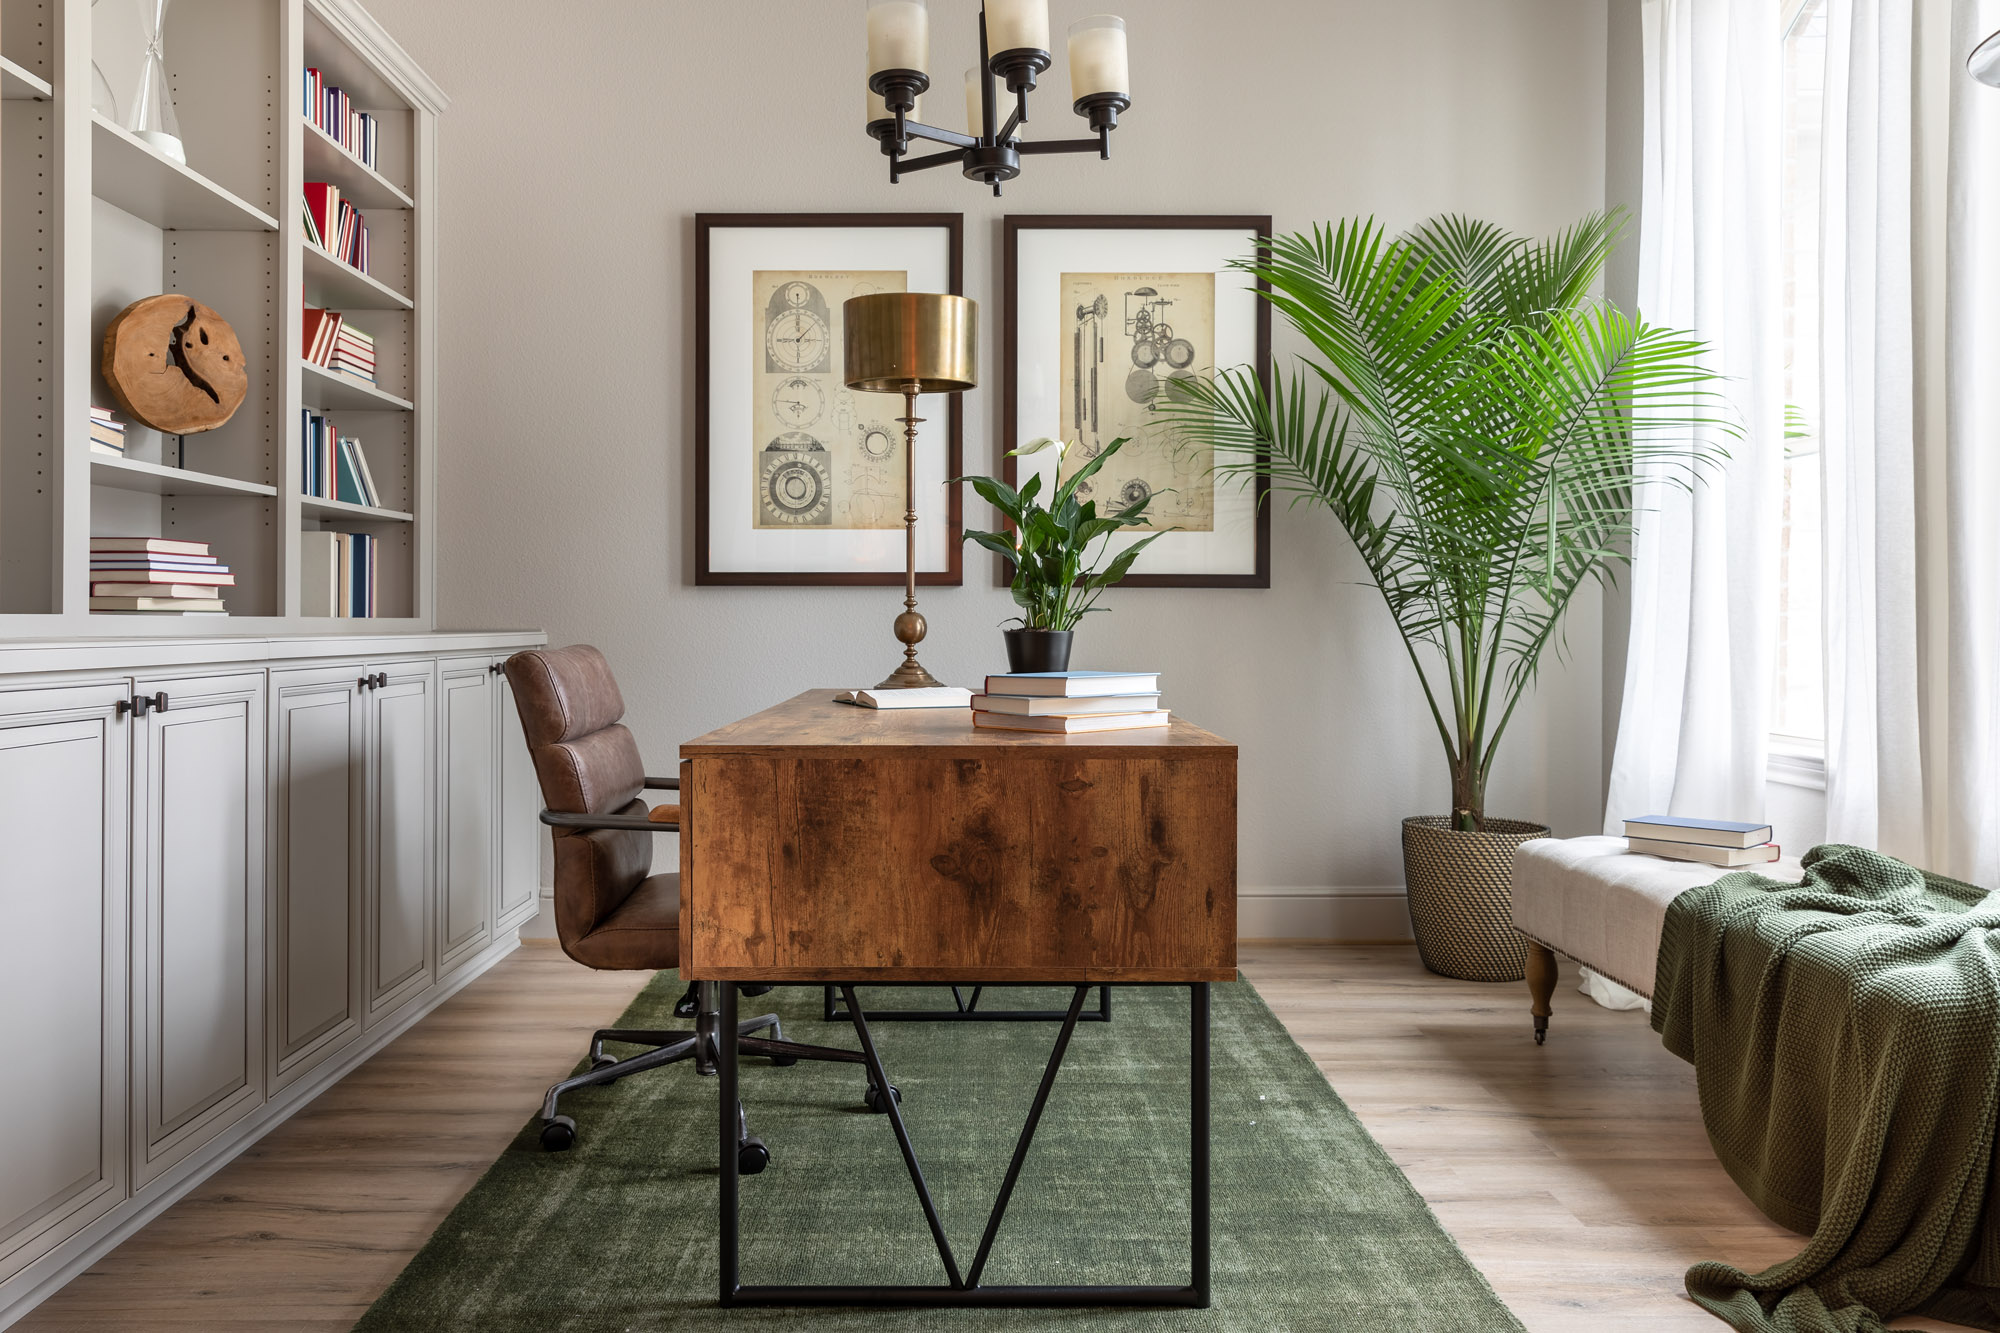 Harper's Preserve study with wood desk, leather chair, large plant, and bright green rug